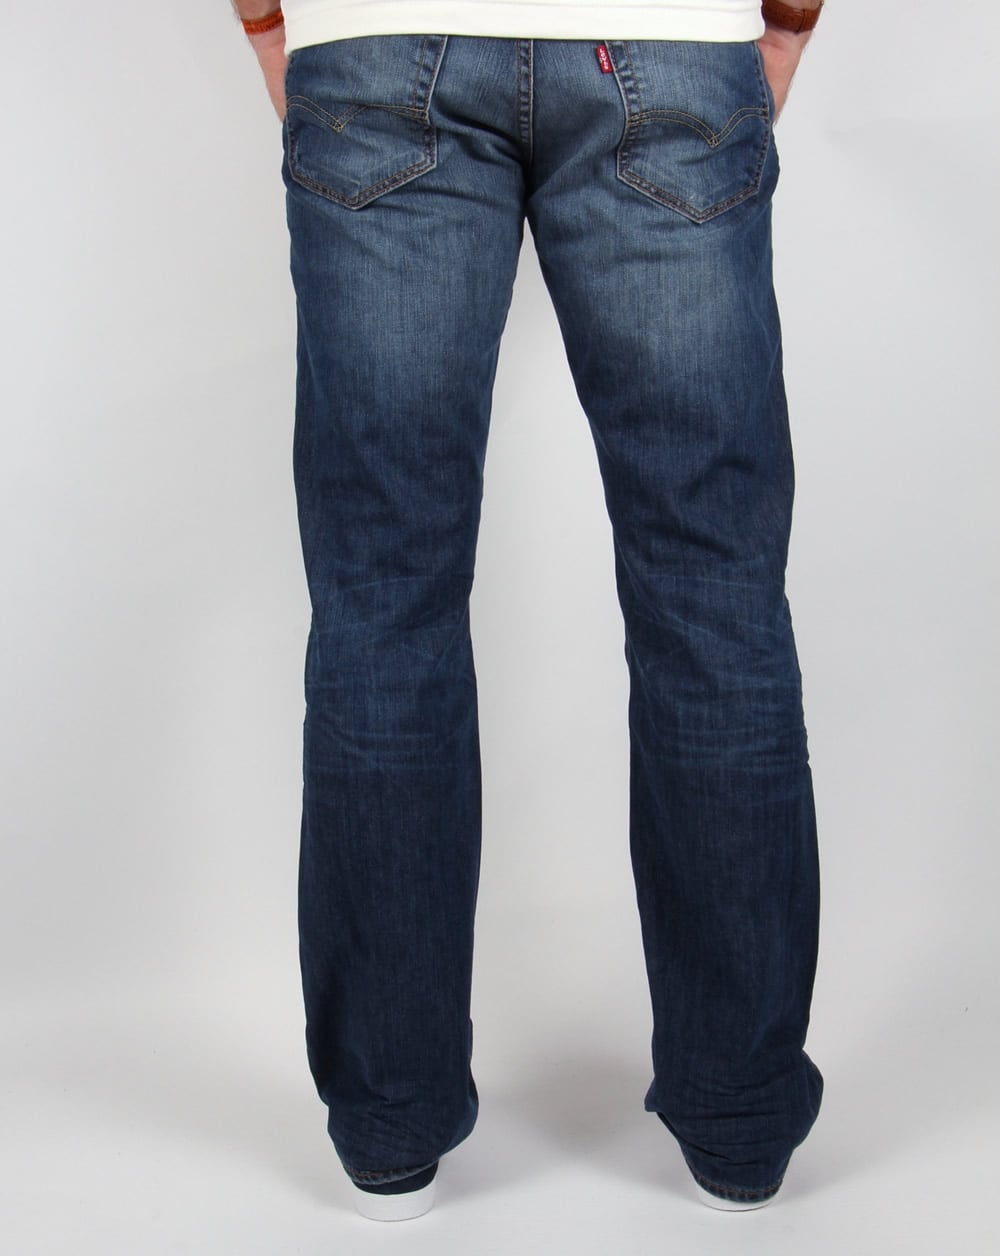 levis 527 slim boot cut mostly mid blue